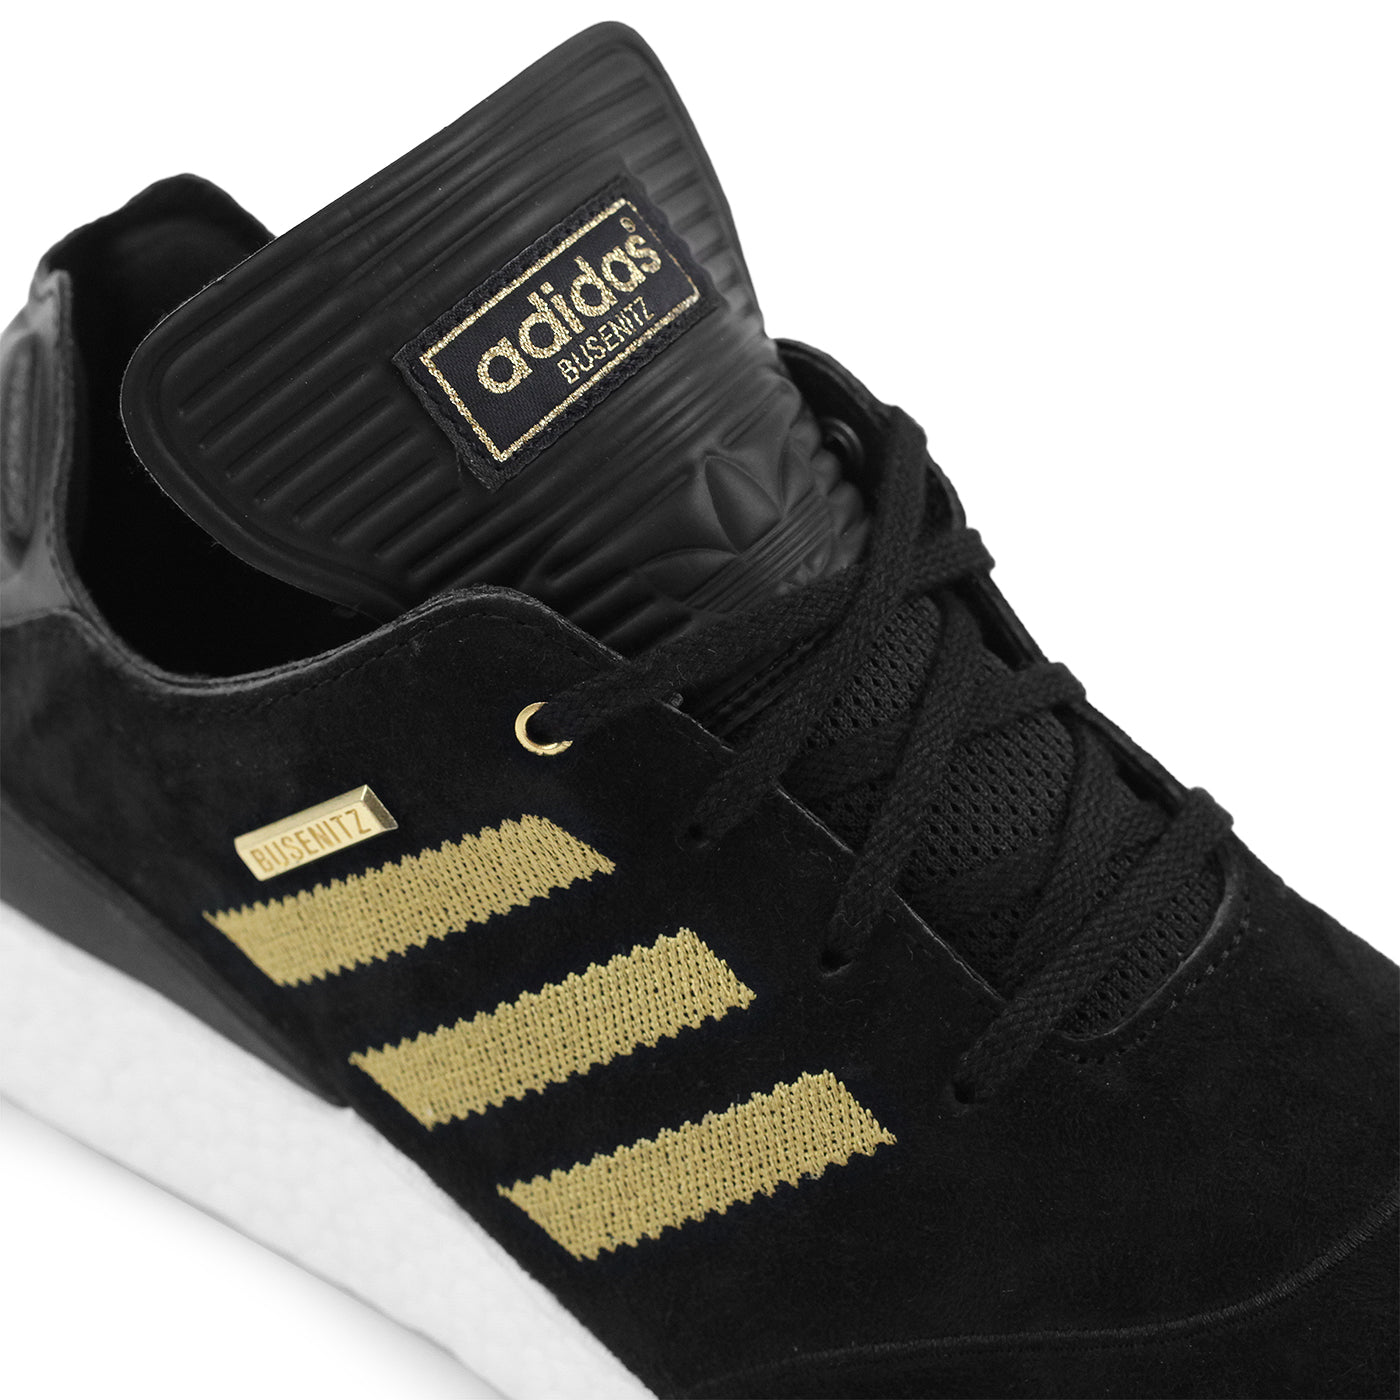 best sneakers 9ea28 4be3d Adidas Busenitz Pure Boost 10 Year Anniversary Shoe - Core Black  Gold  Metallic  White. Size Charts